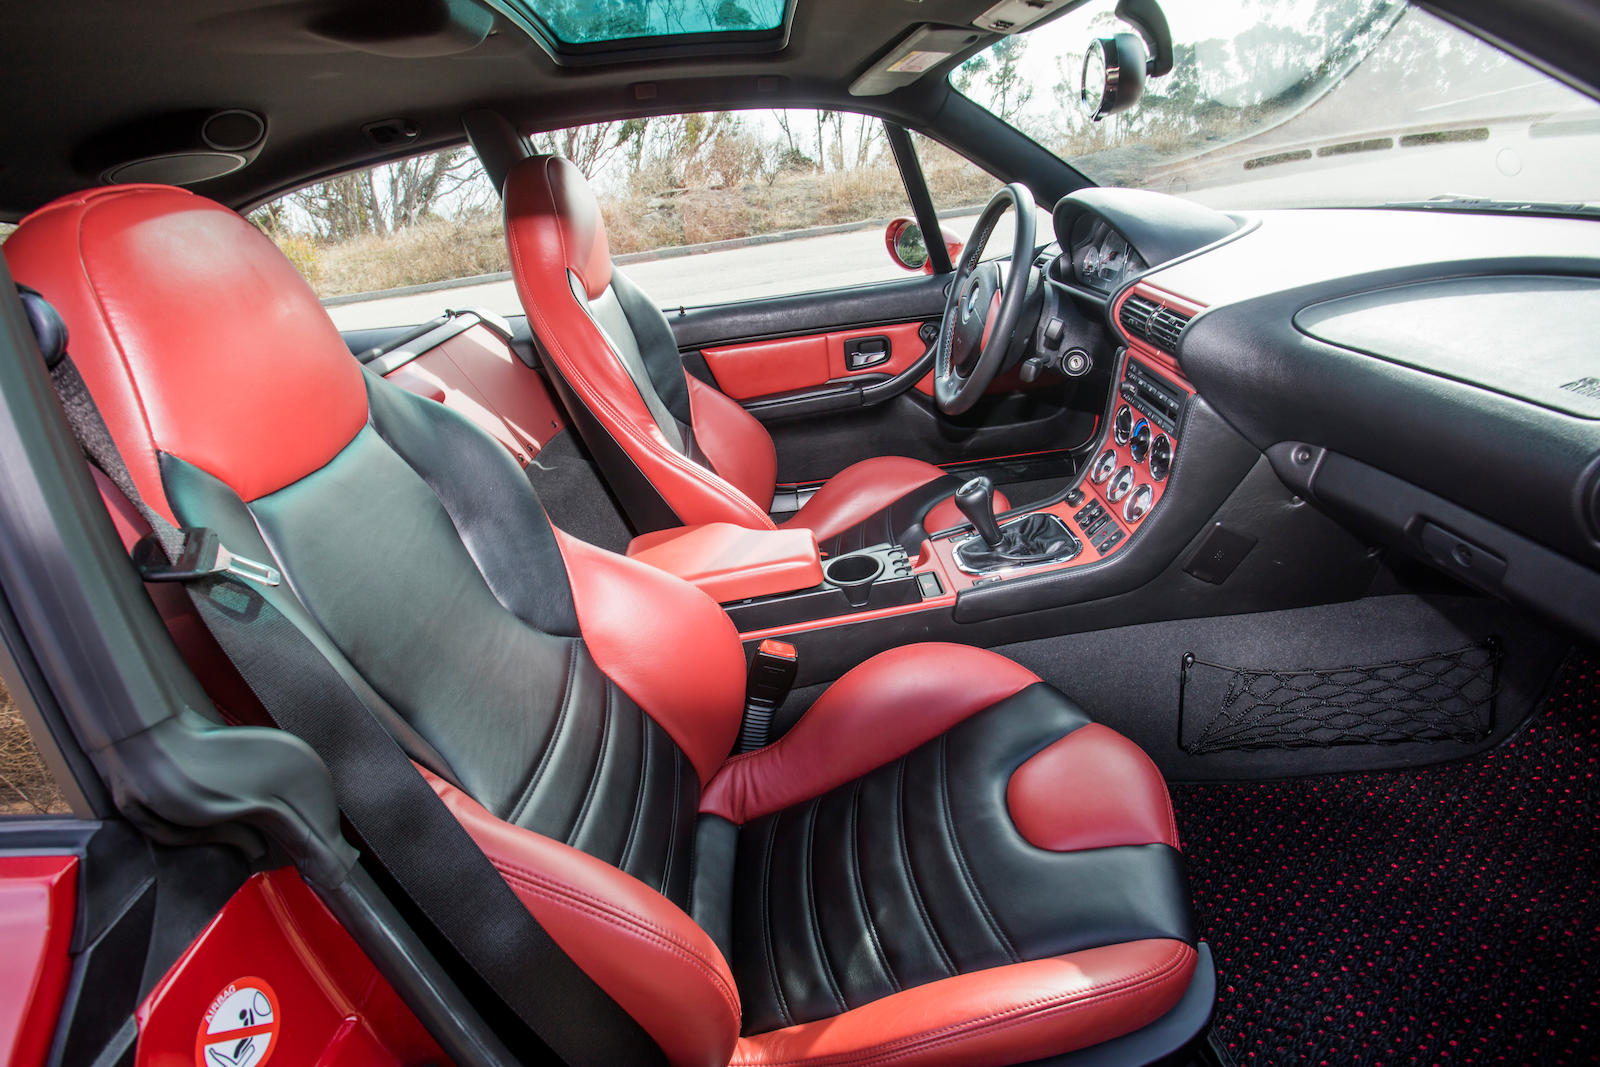 2002 BMW Z3 M Coupe interior passenger seats